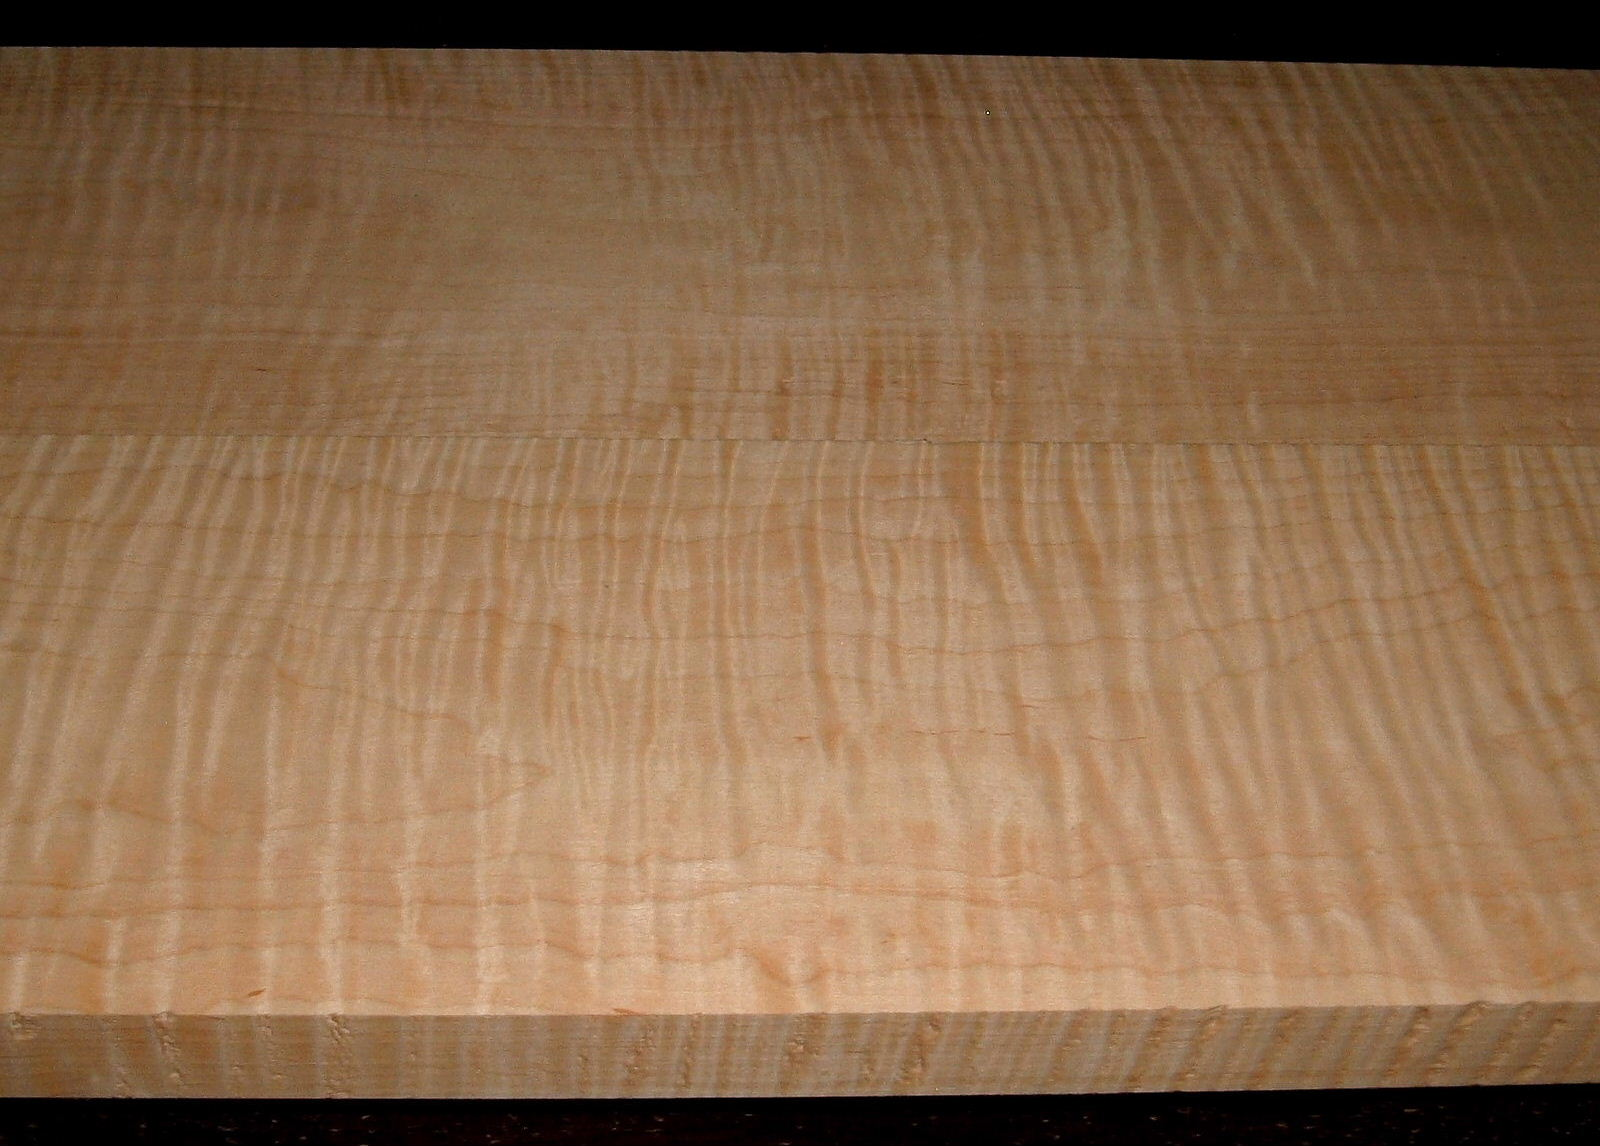 M2104-289, 2 Bd Matched Set, 1-1/4x6-3/4x33, 1-1/8x7-1/4x33, Curly Tiger Maple